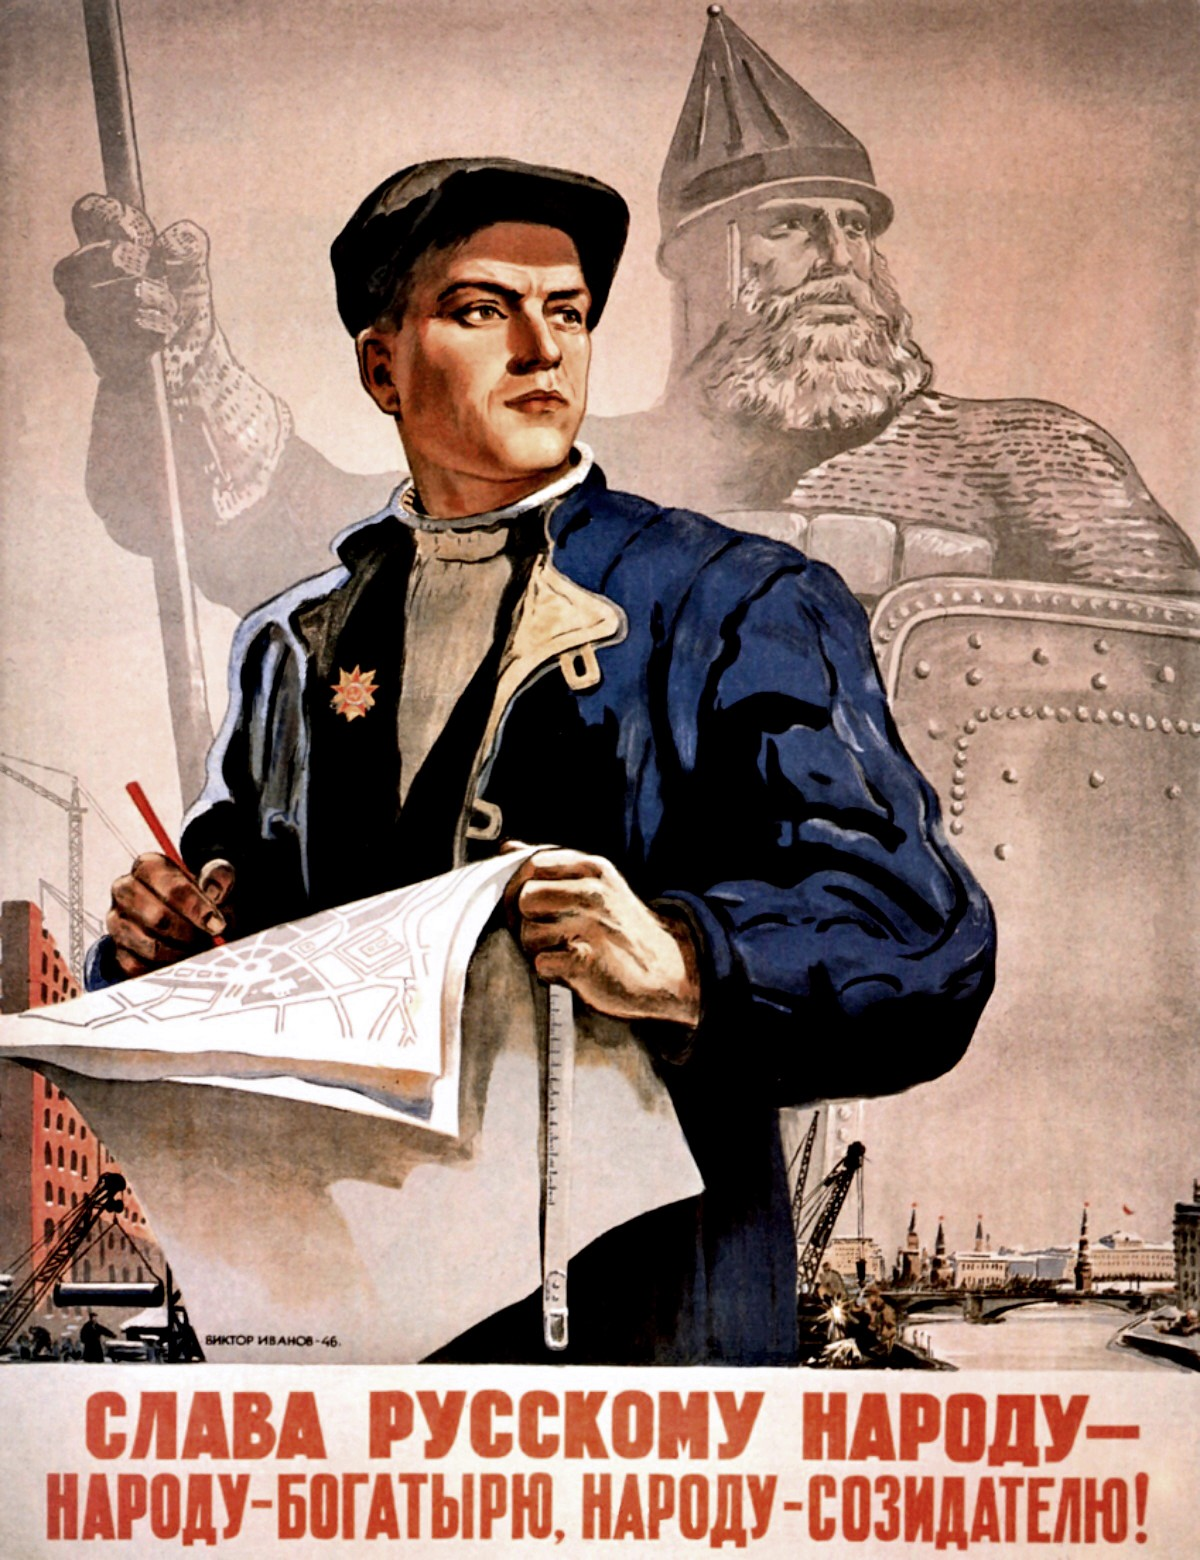 00 Viktor Ivanov. Glory to the Russian People! A Nation of Epic Heroism... A Nation of Inventive Creativity! 1946